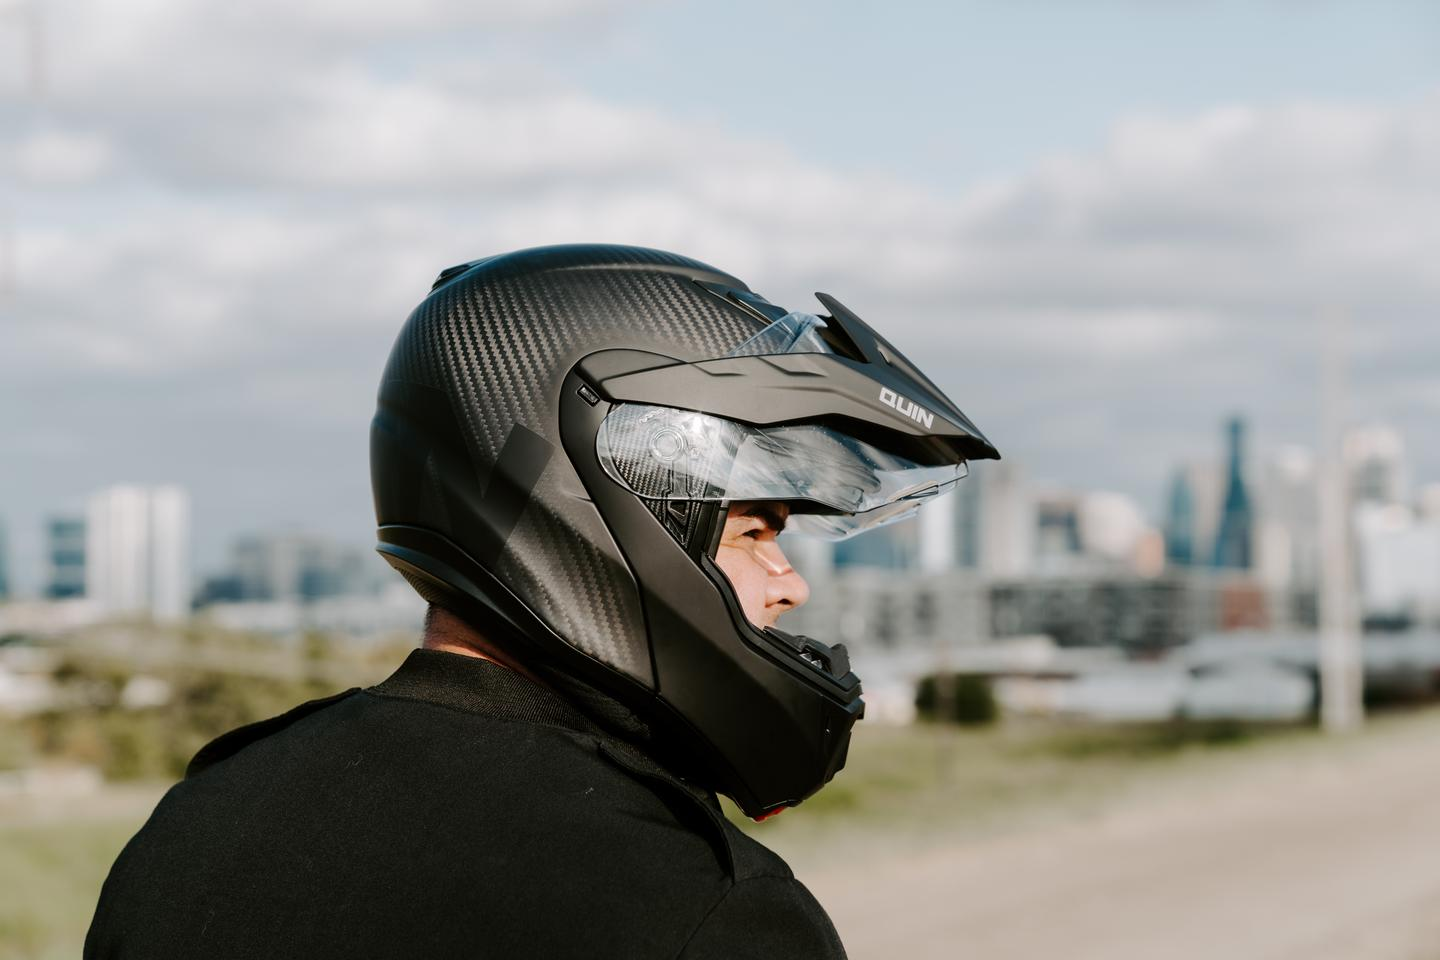 The Quin Quest – a modular, carbon helmet with fully integrated Bluetooth comms, crash detection and SOS alerts